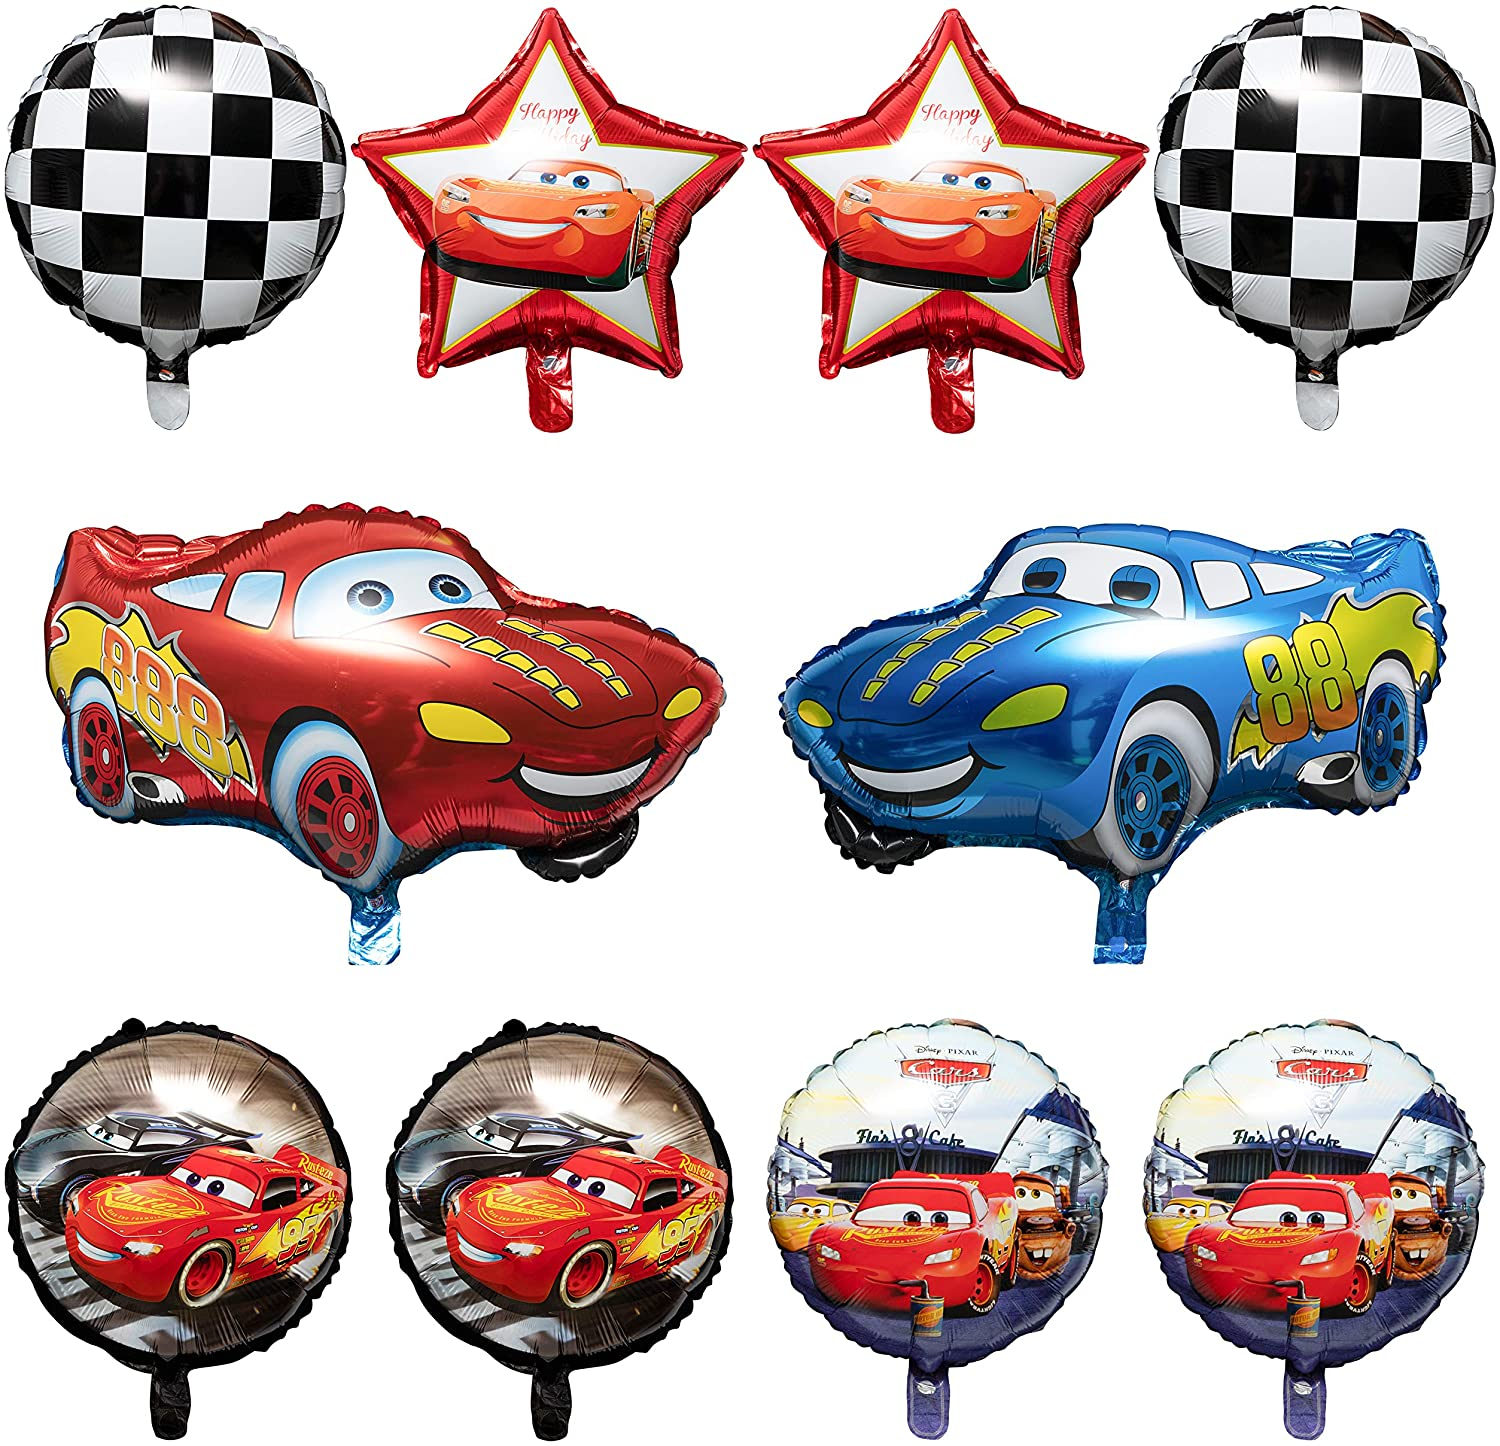 Racing Theme 12Inch Assorted Colors Latex Balloons Bouquet with Ribbons Let/'s Go Racing Party Favors Decorations Supplies for Kids Boys Birthday Baby Shower PANTIDE 50 Packs Race Car Balloons